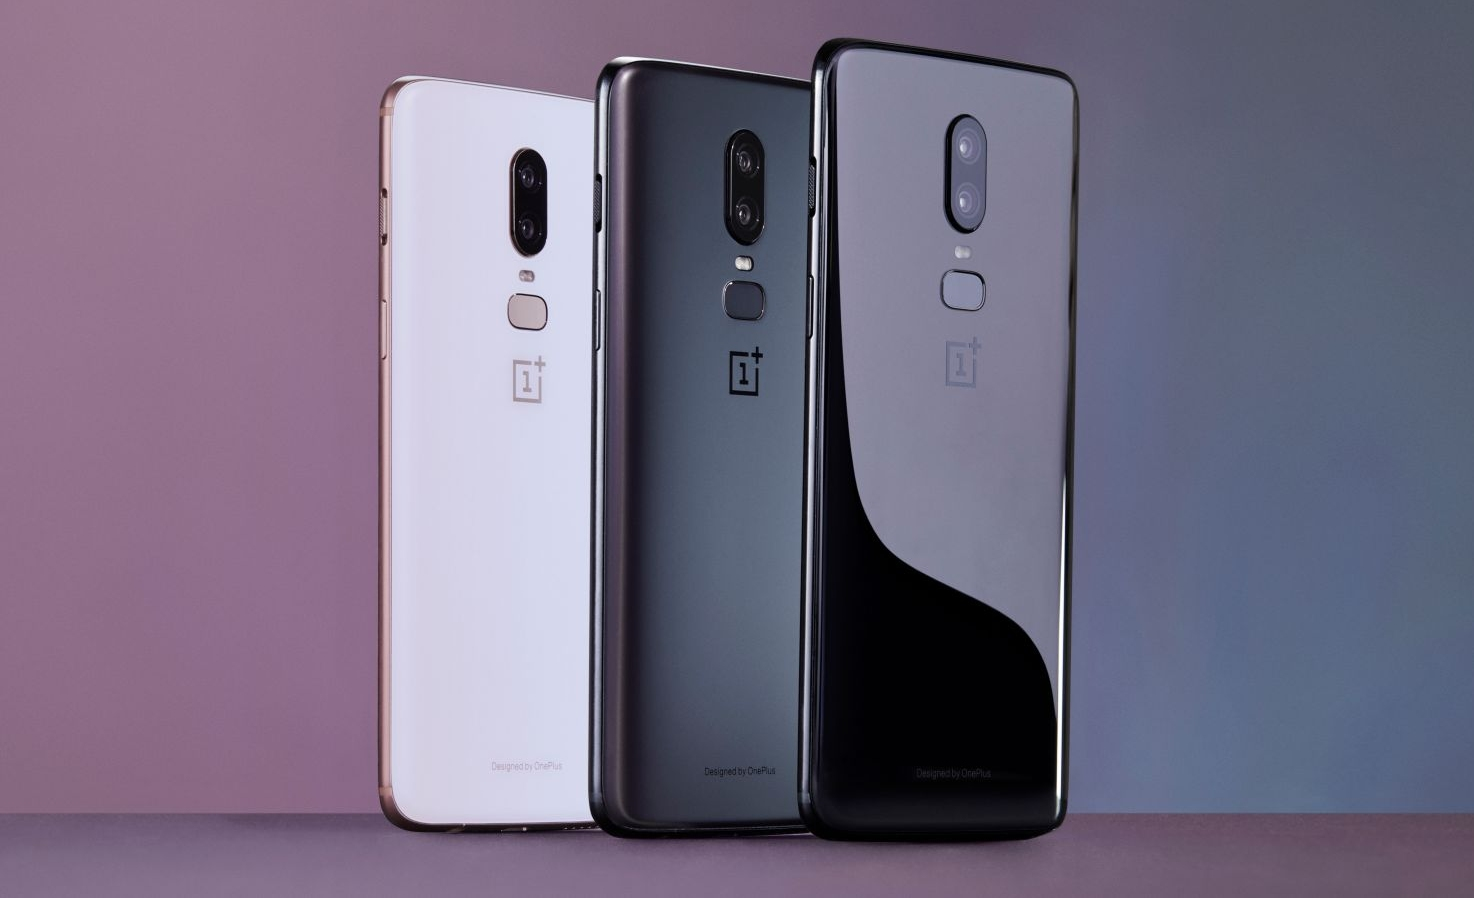 OnePlus 6 crosses 1 million sales globally in 22 days, claims company